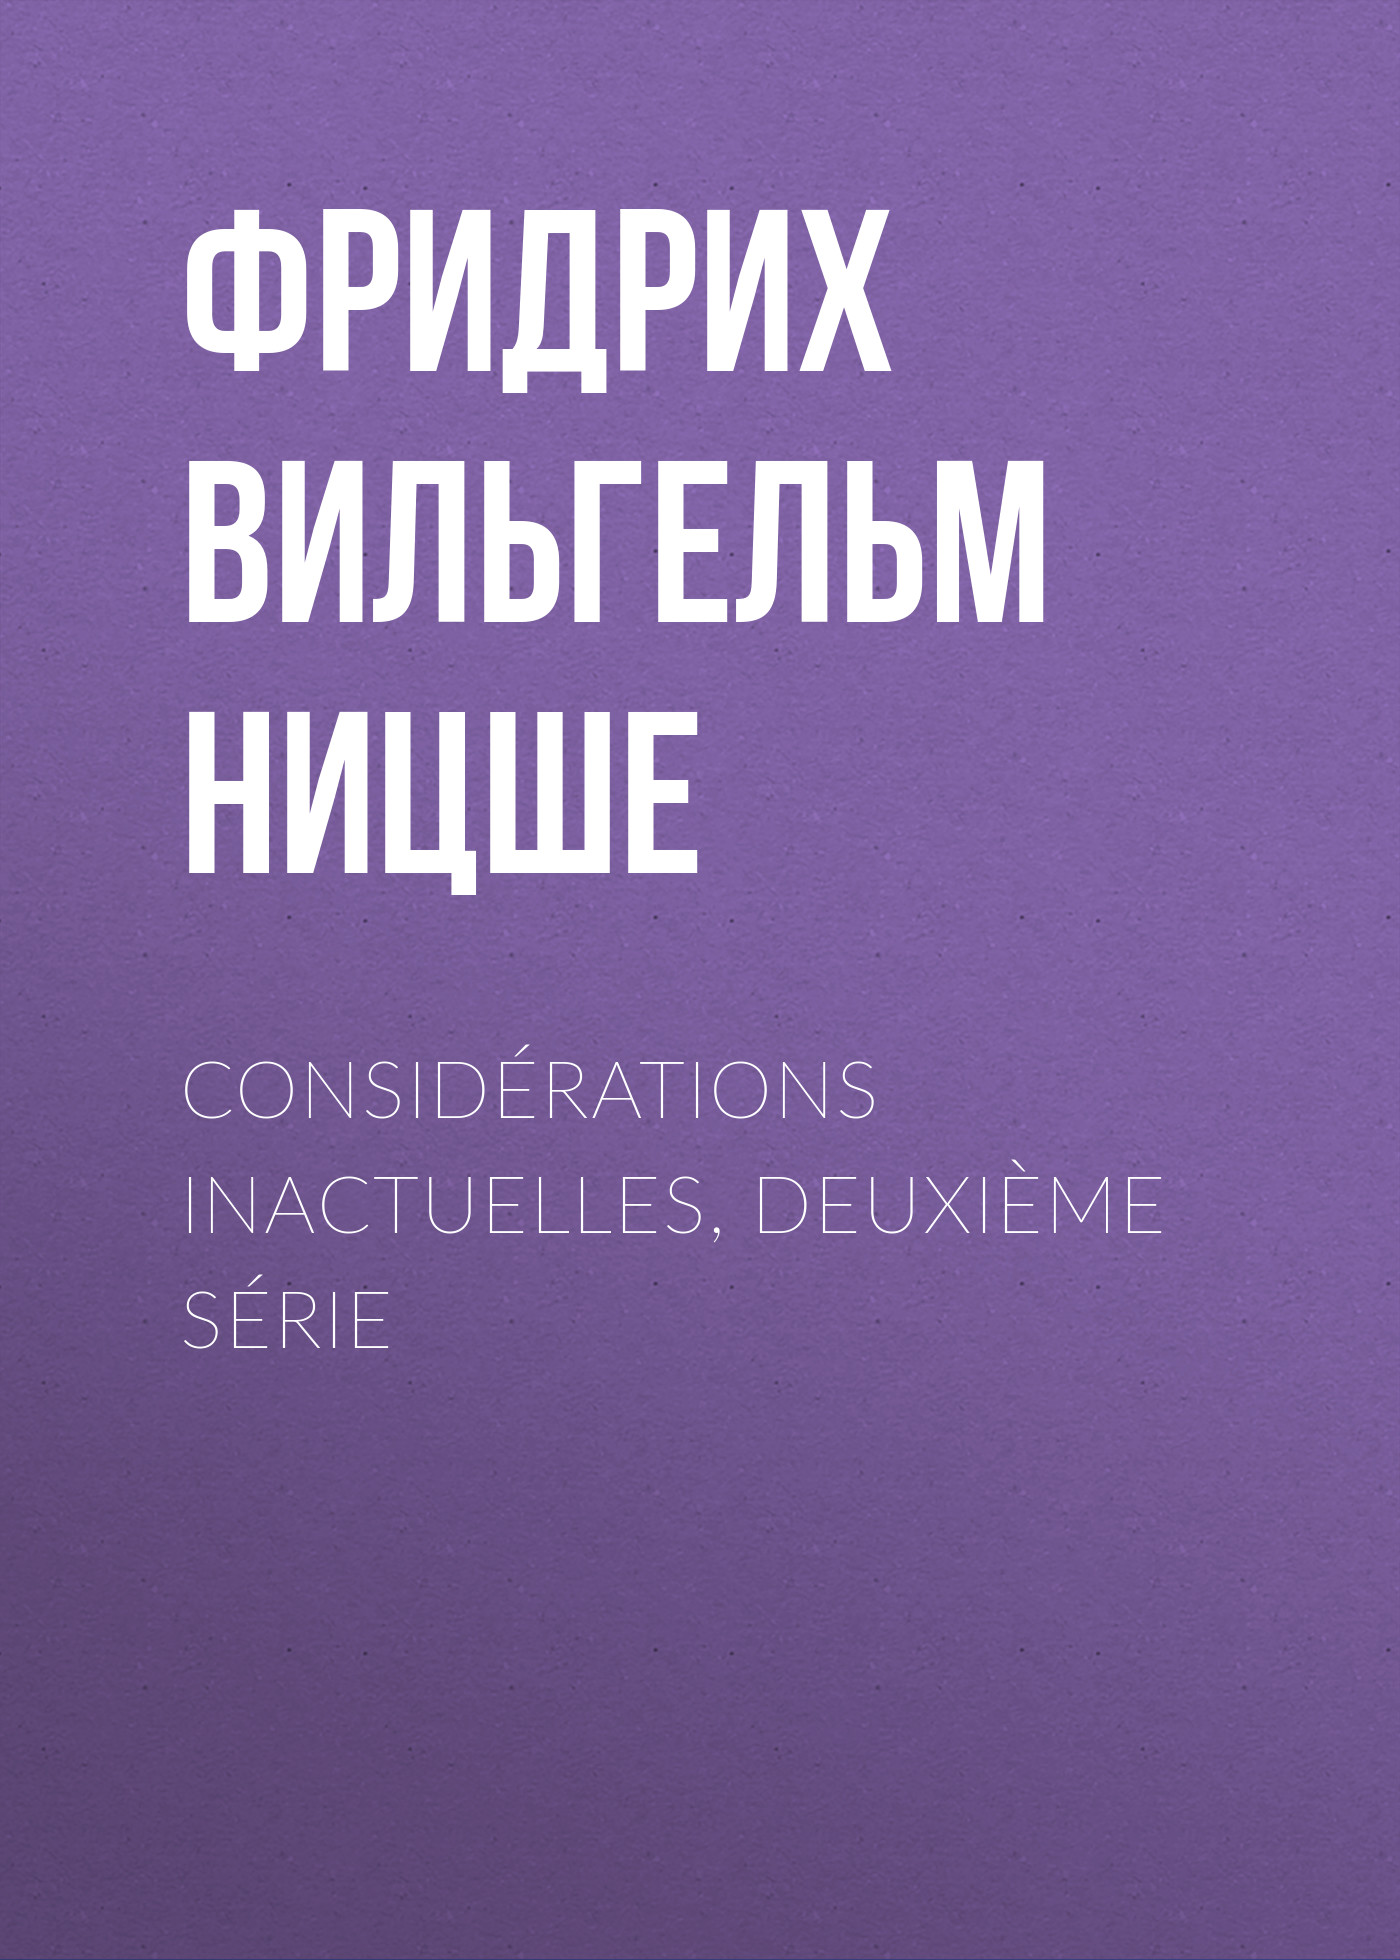 considerations inactuelles deuxieme serie